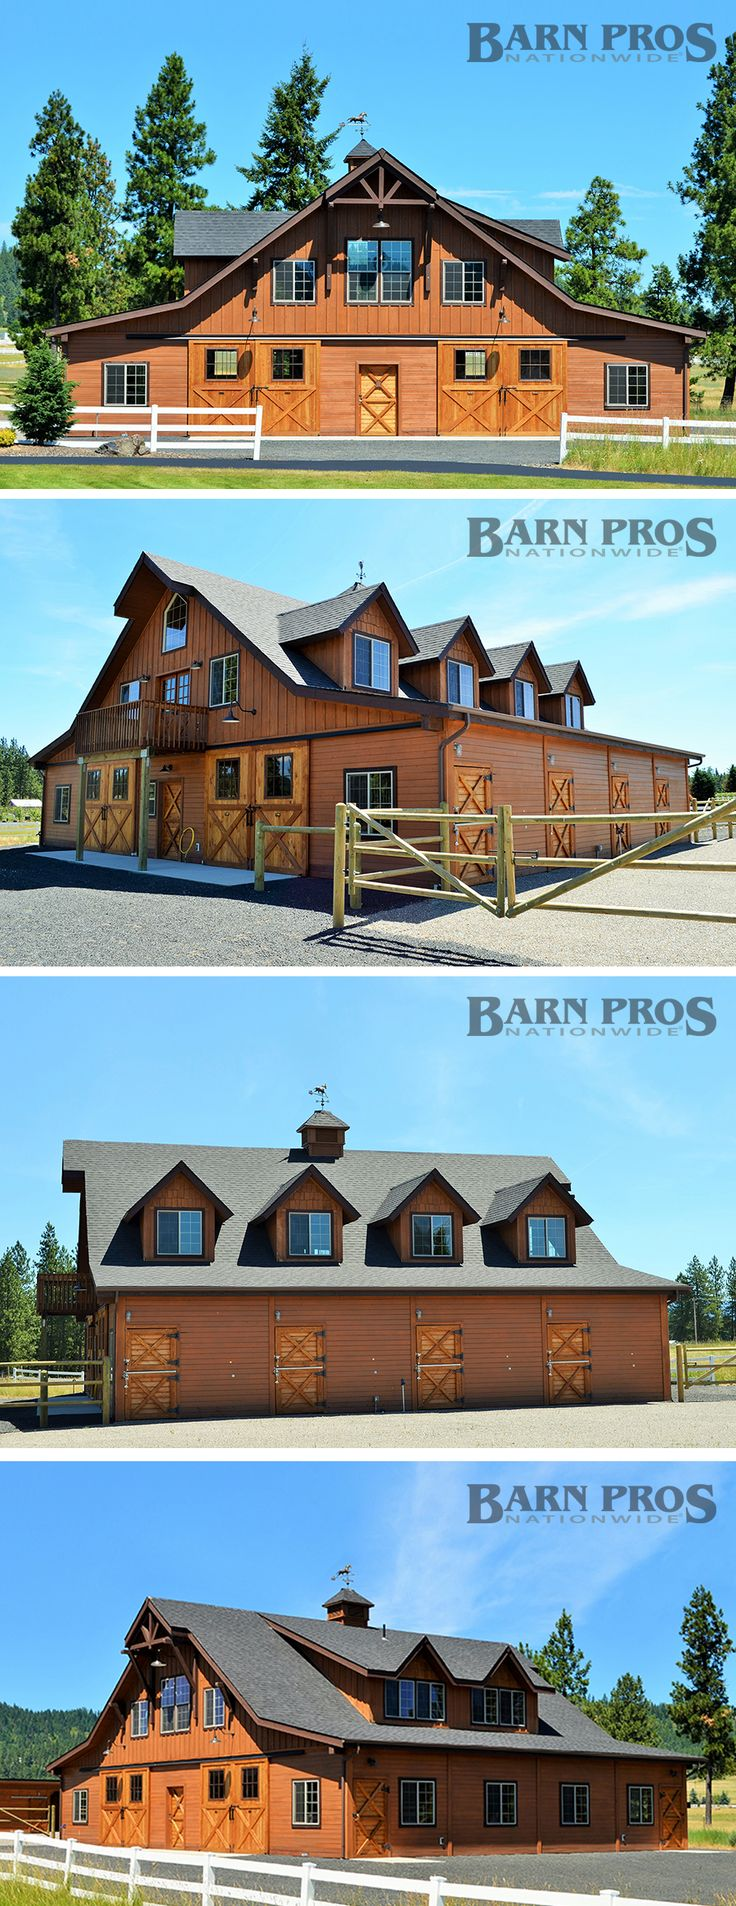 Double breezeway barn measuring 60ft wide x 48ft long - Barn Pros Equestrian gable barn kit #stable #modular #dormer who wants to build me this?